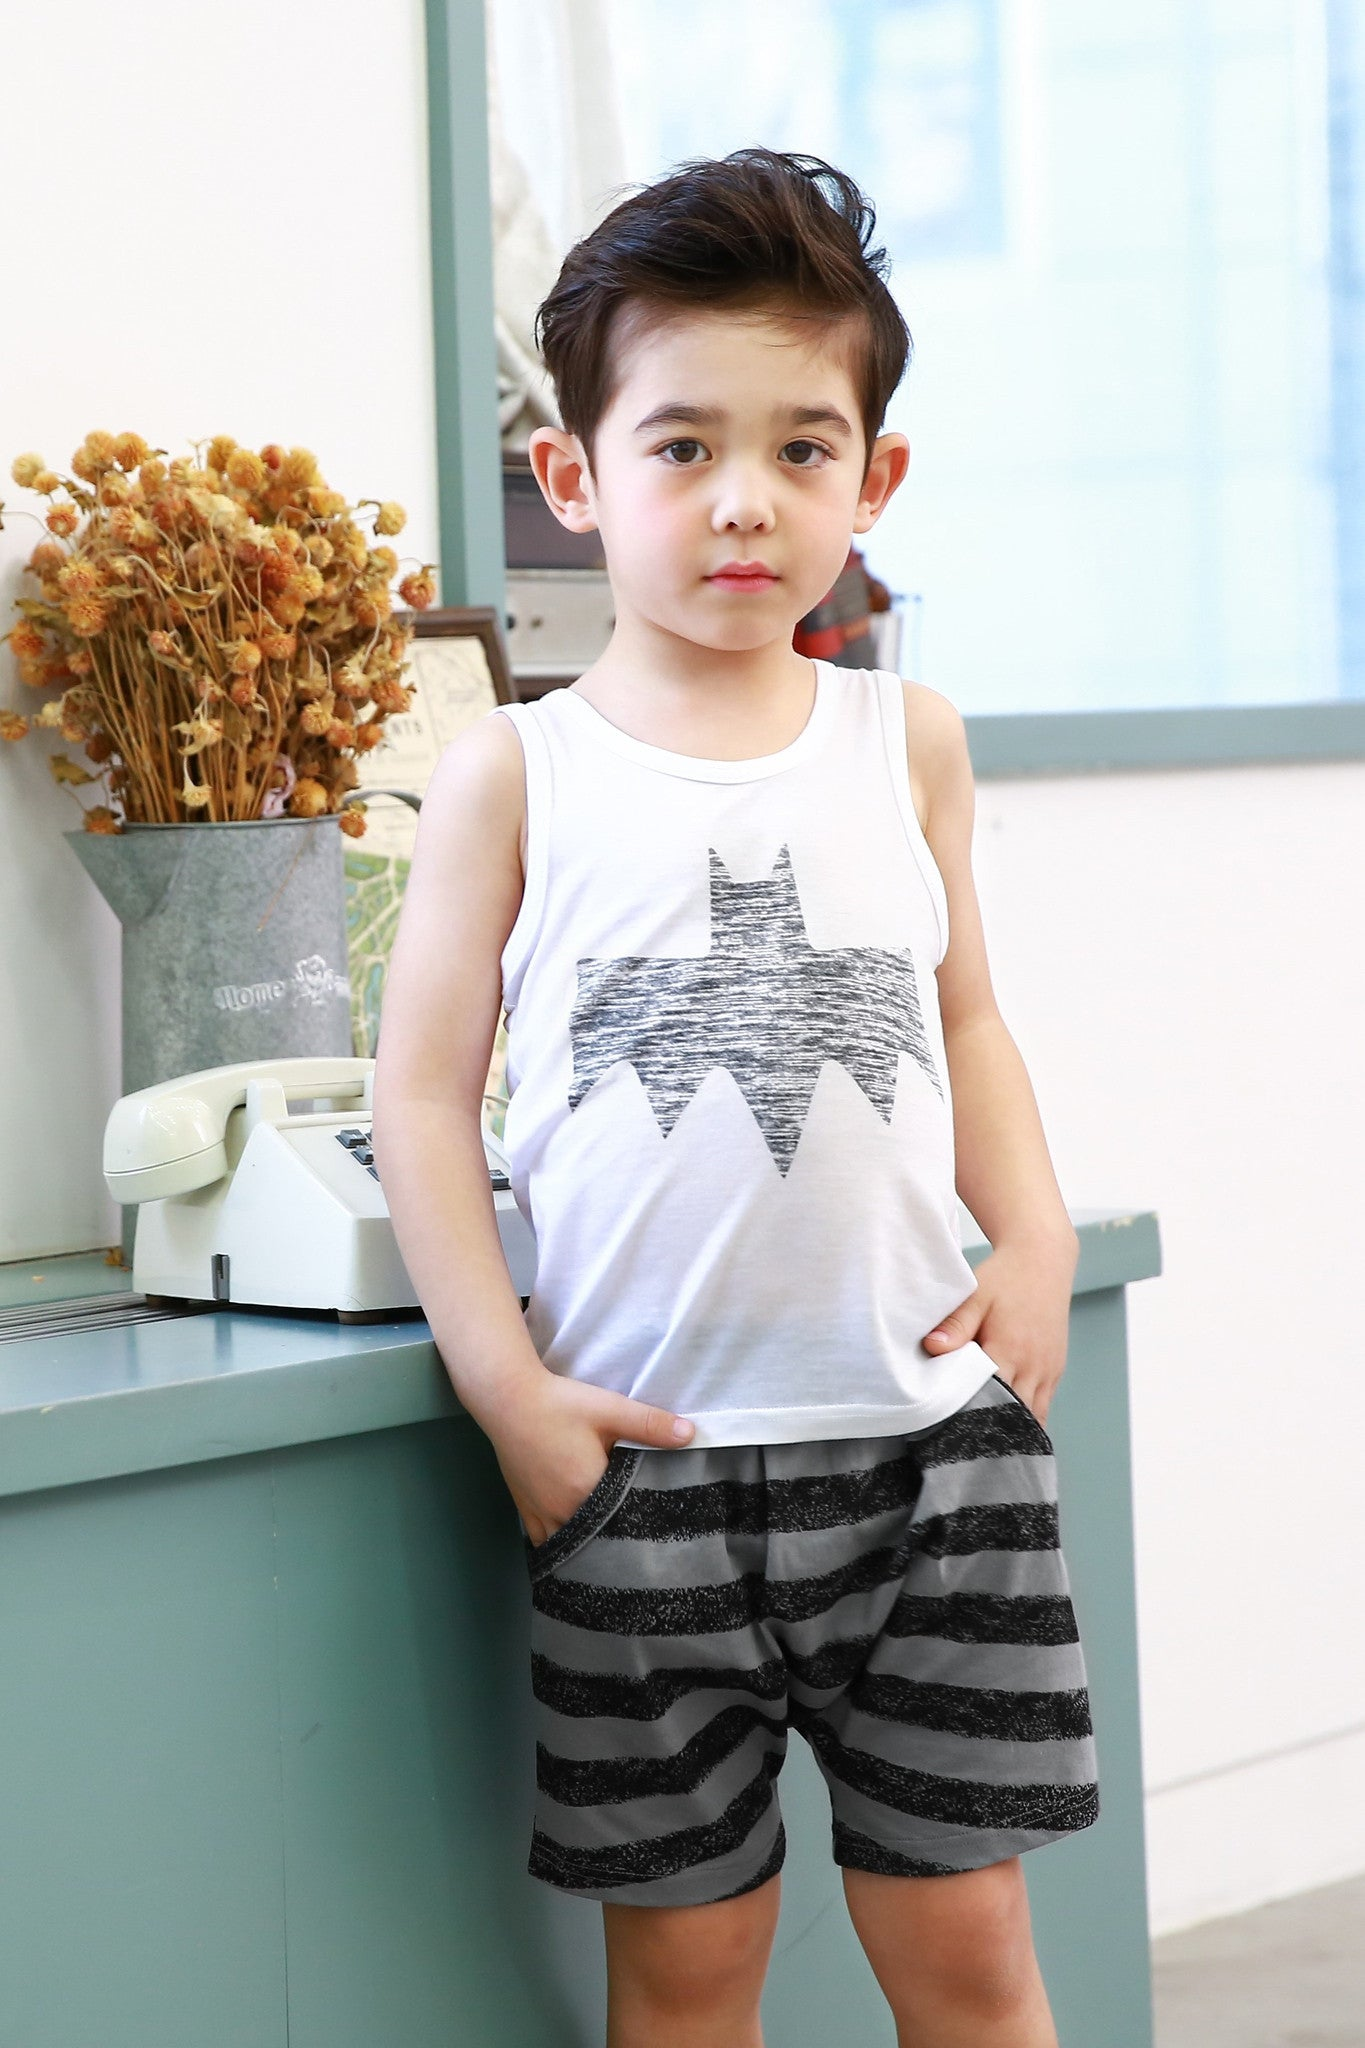 Easy Wear - Sleeveless Sets - Bat Boy